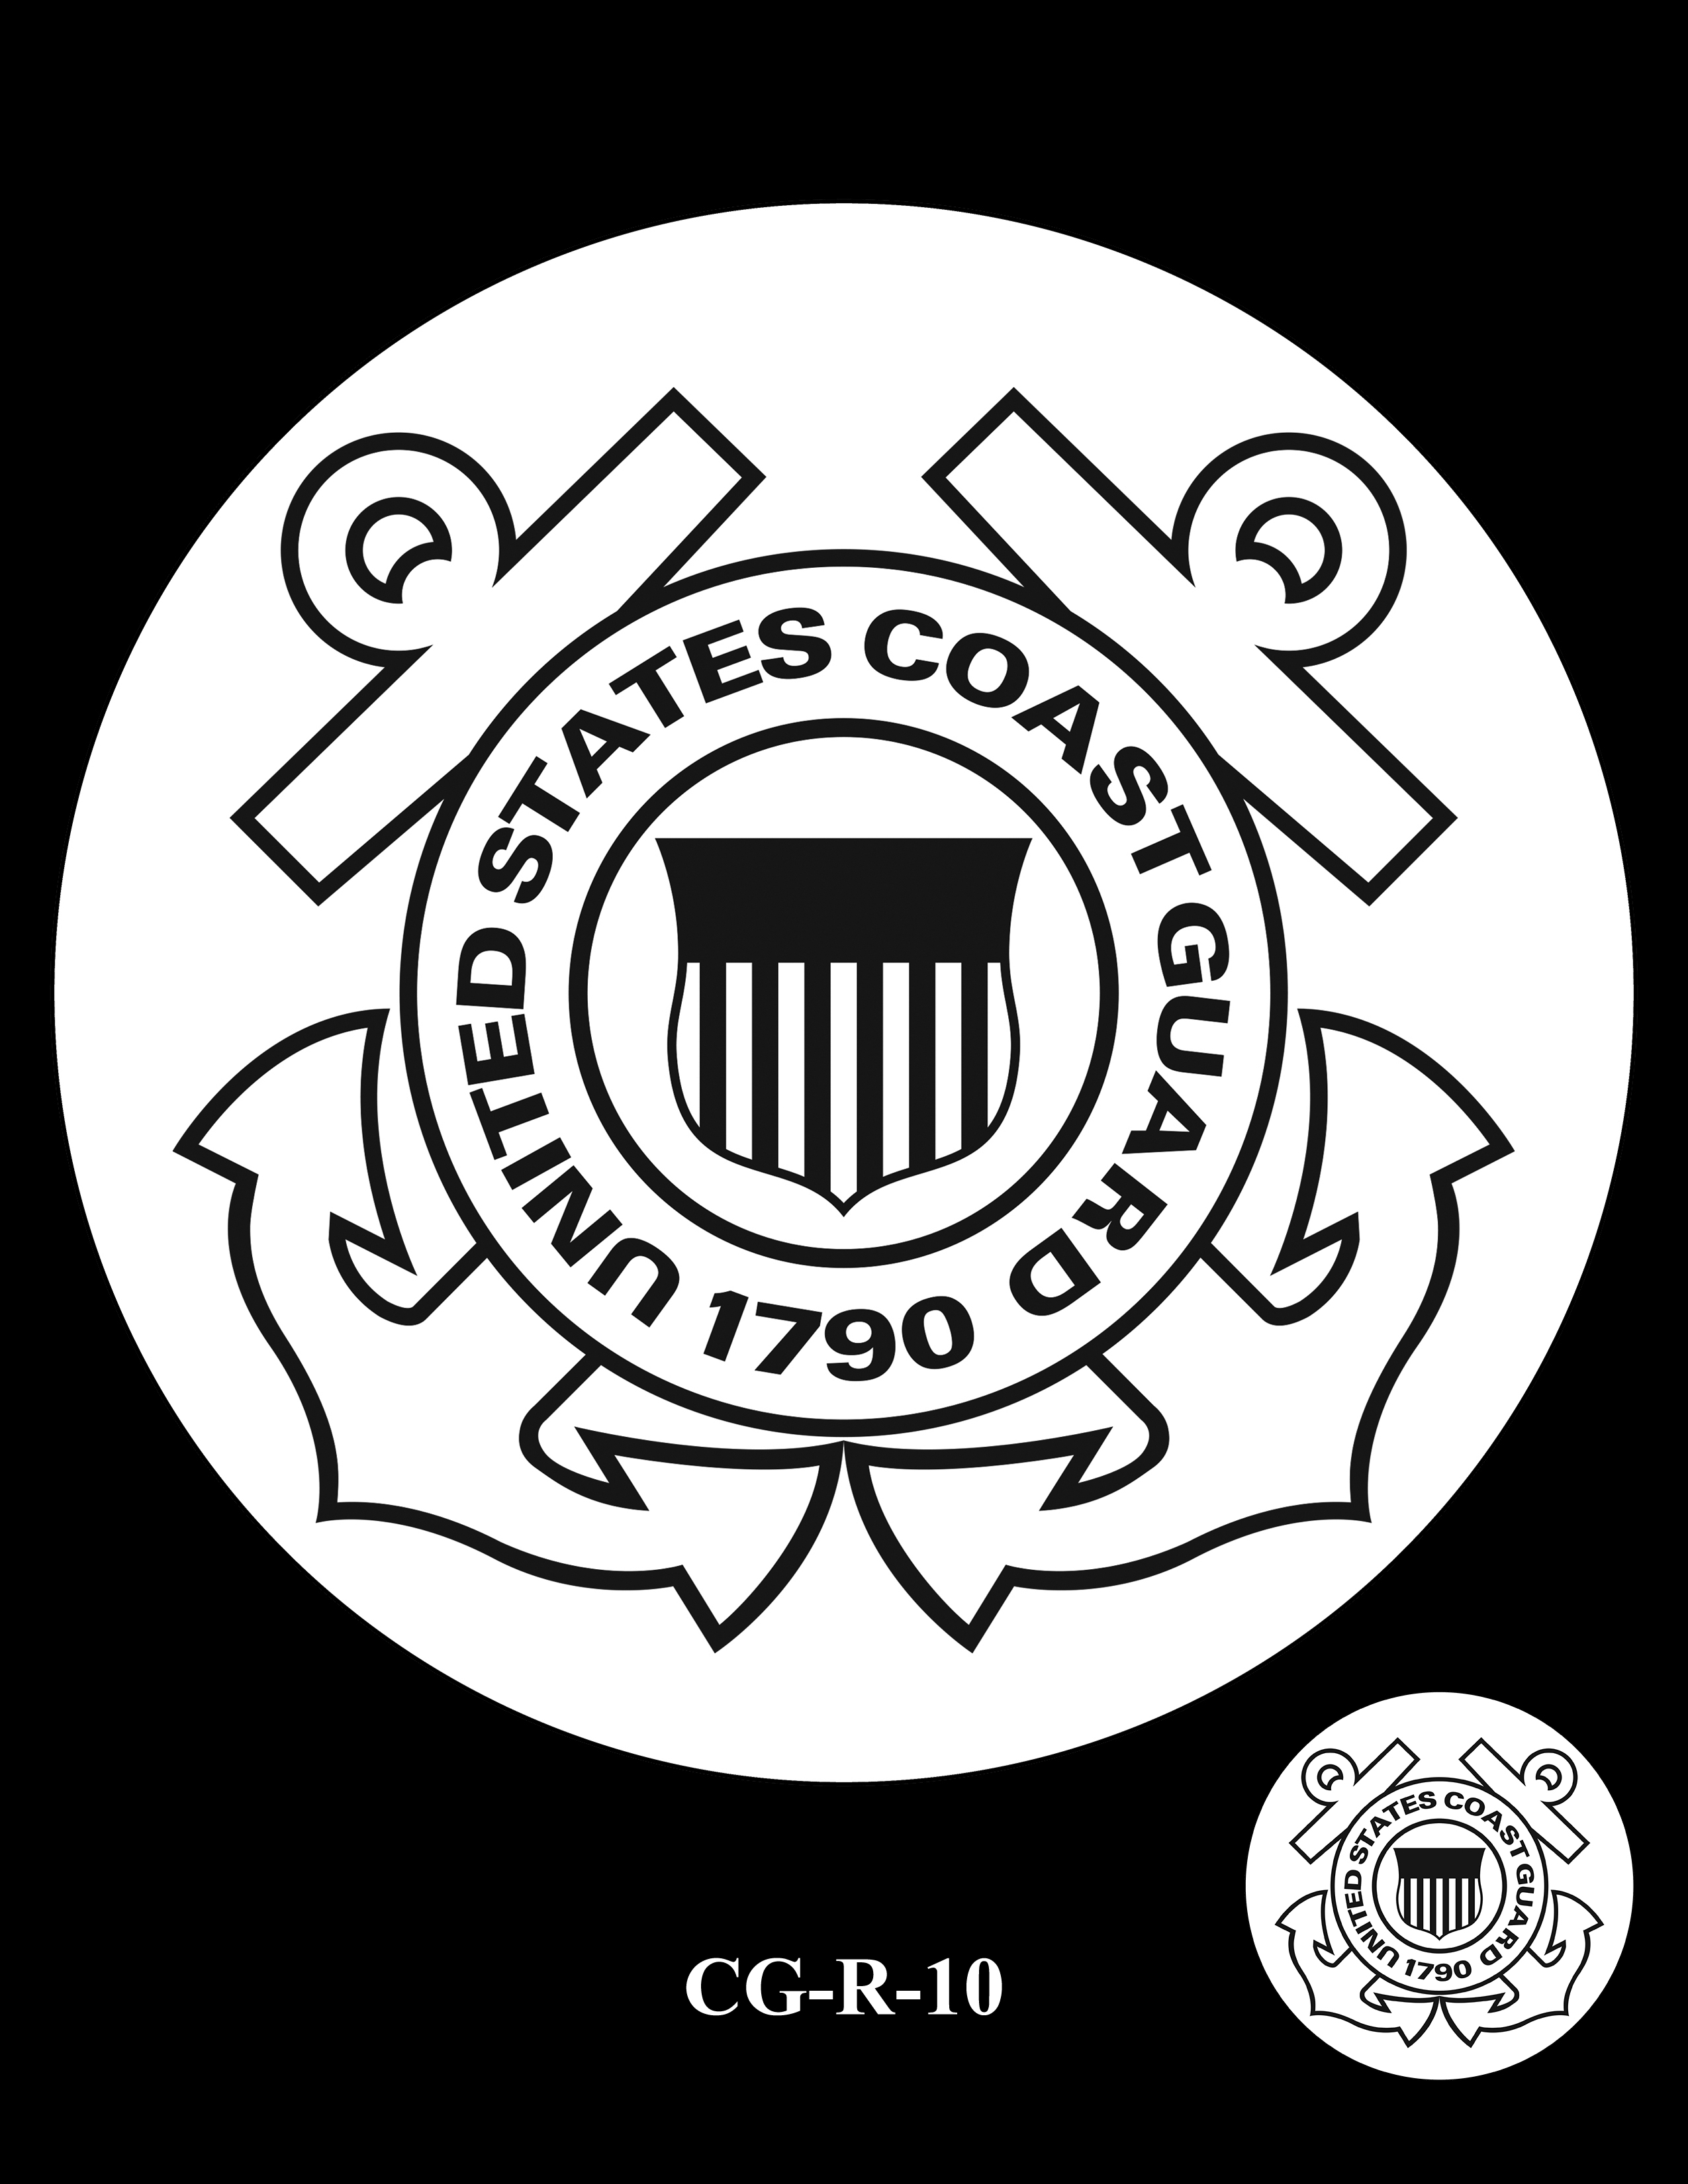 CG-R-10 -- Armed Forces Medal - Coast Guard